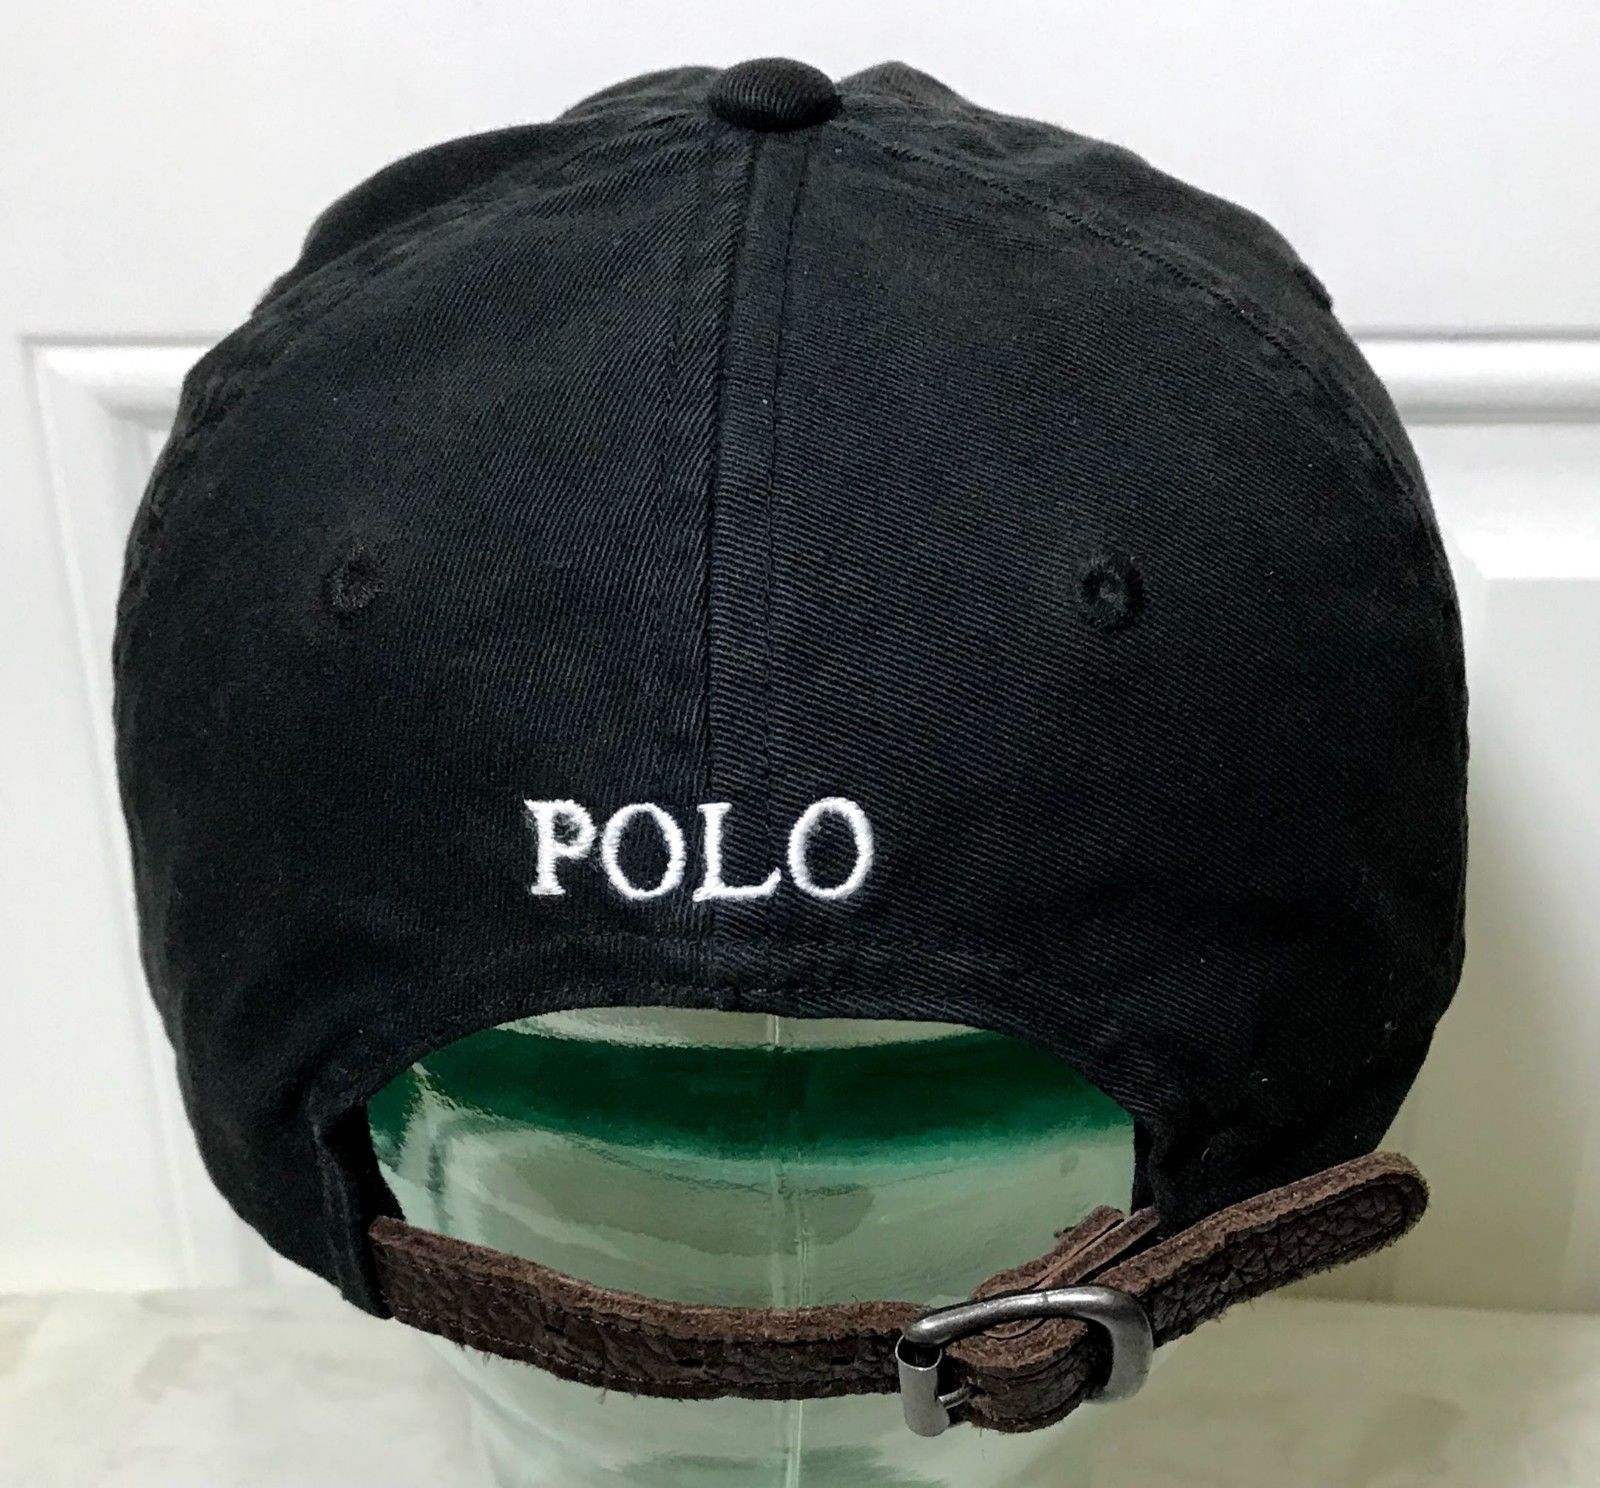 e4666fd23945f Polo Ralph Lauren Hat Leather Strap Pony Black Vintage 90s Dad Cap Spell  Out